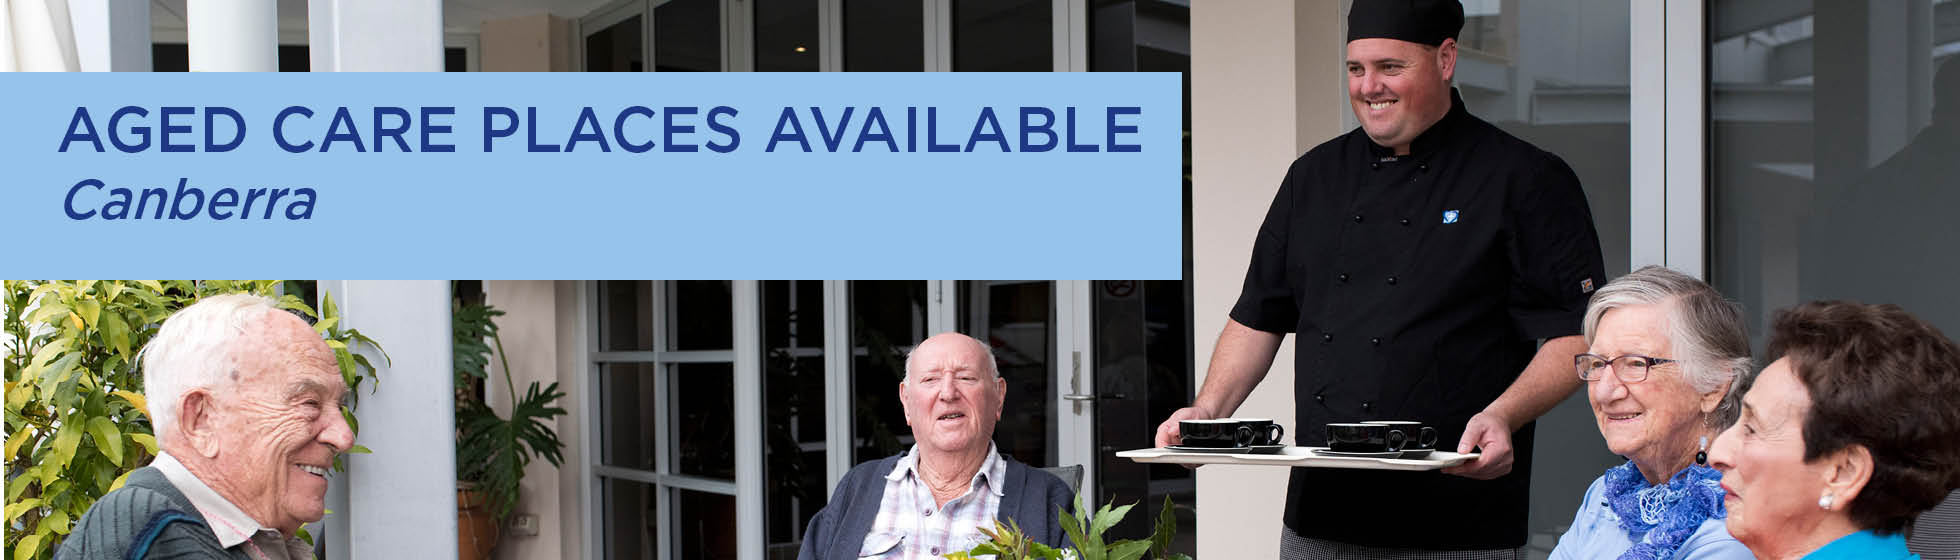 Canberra aged care places available